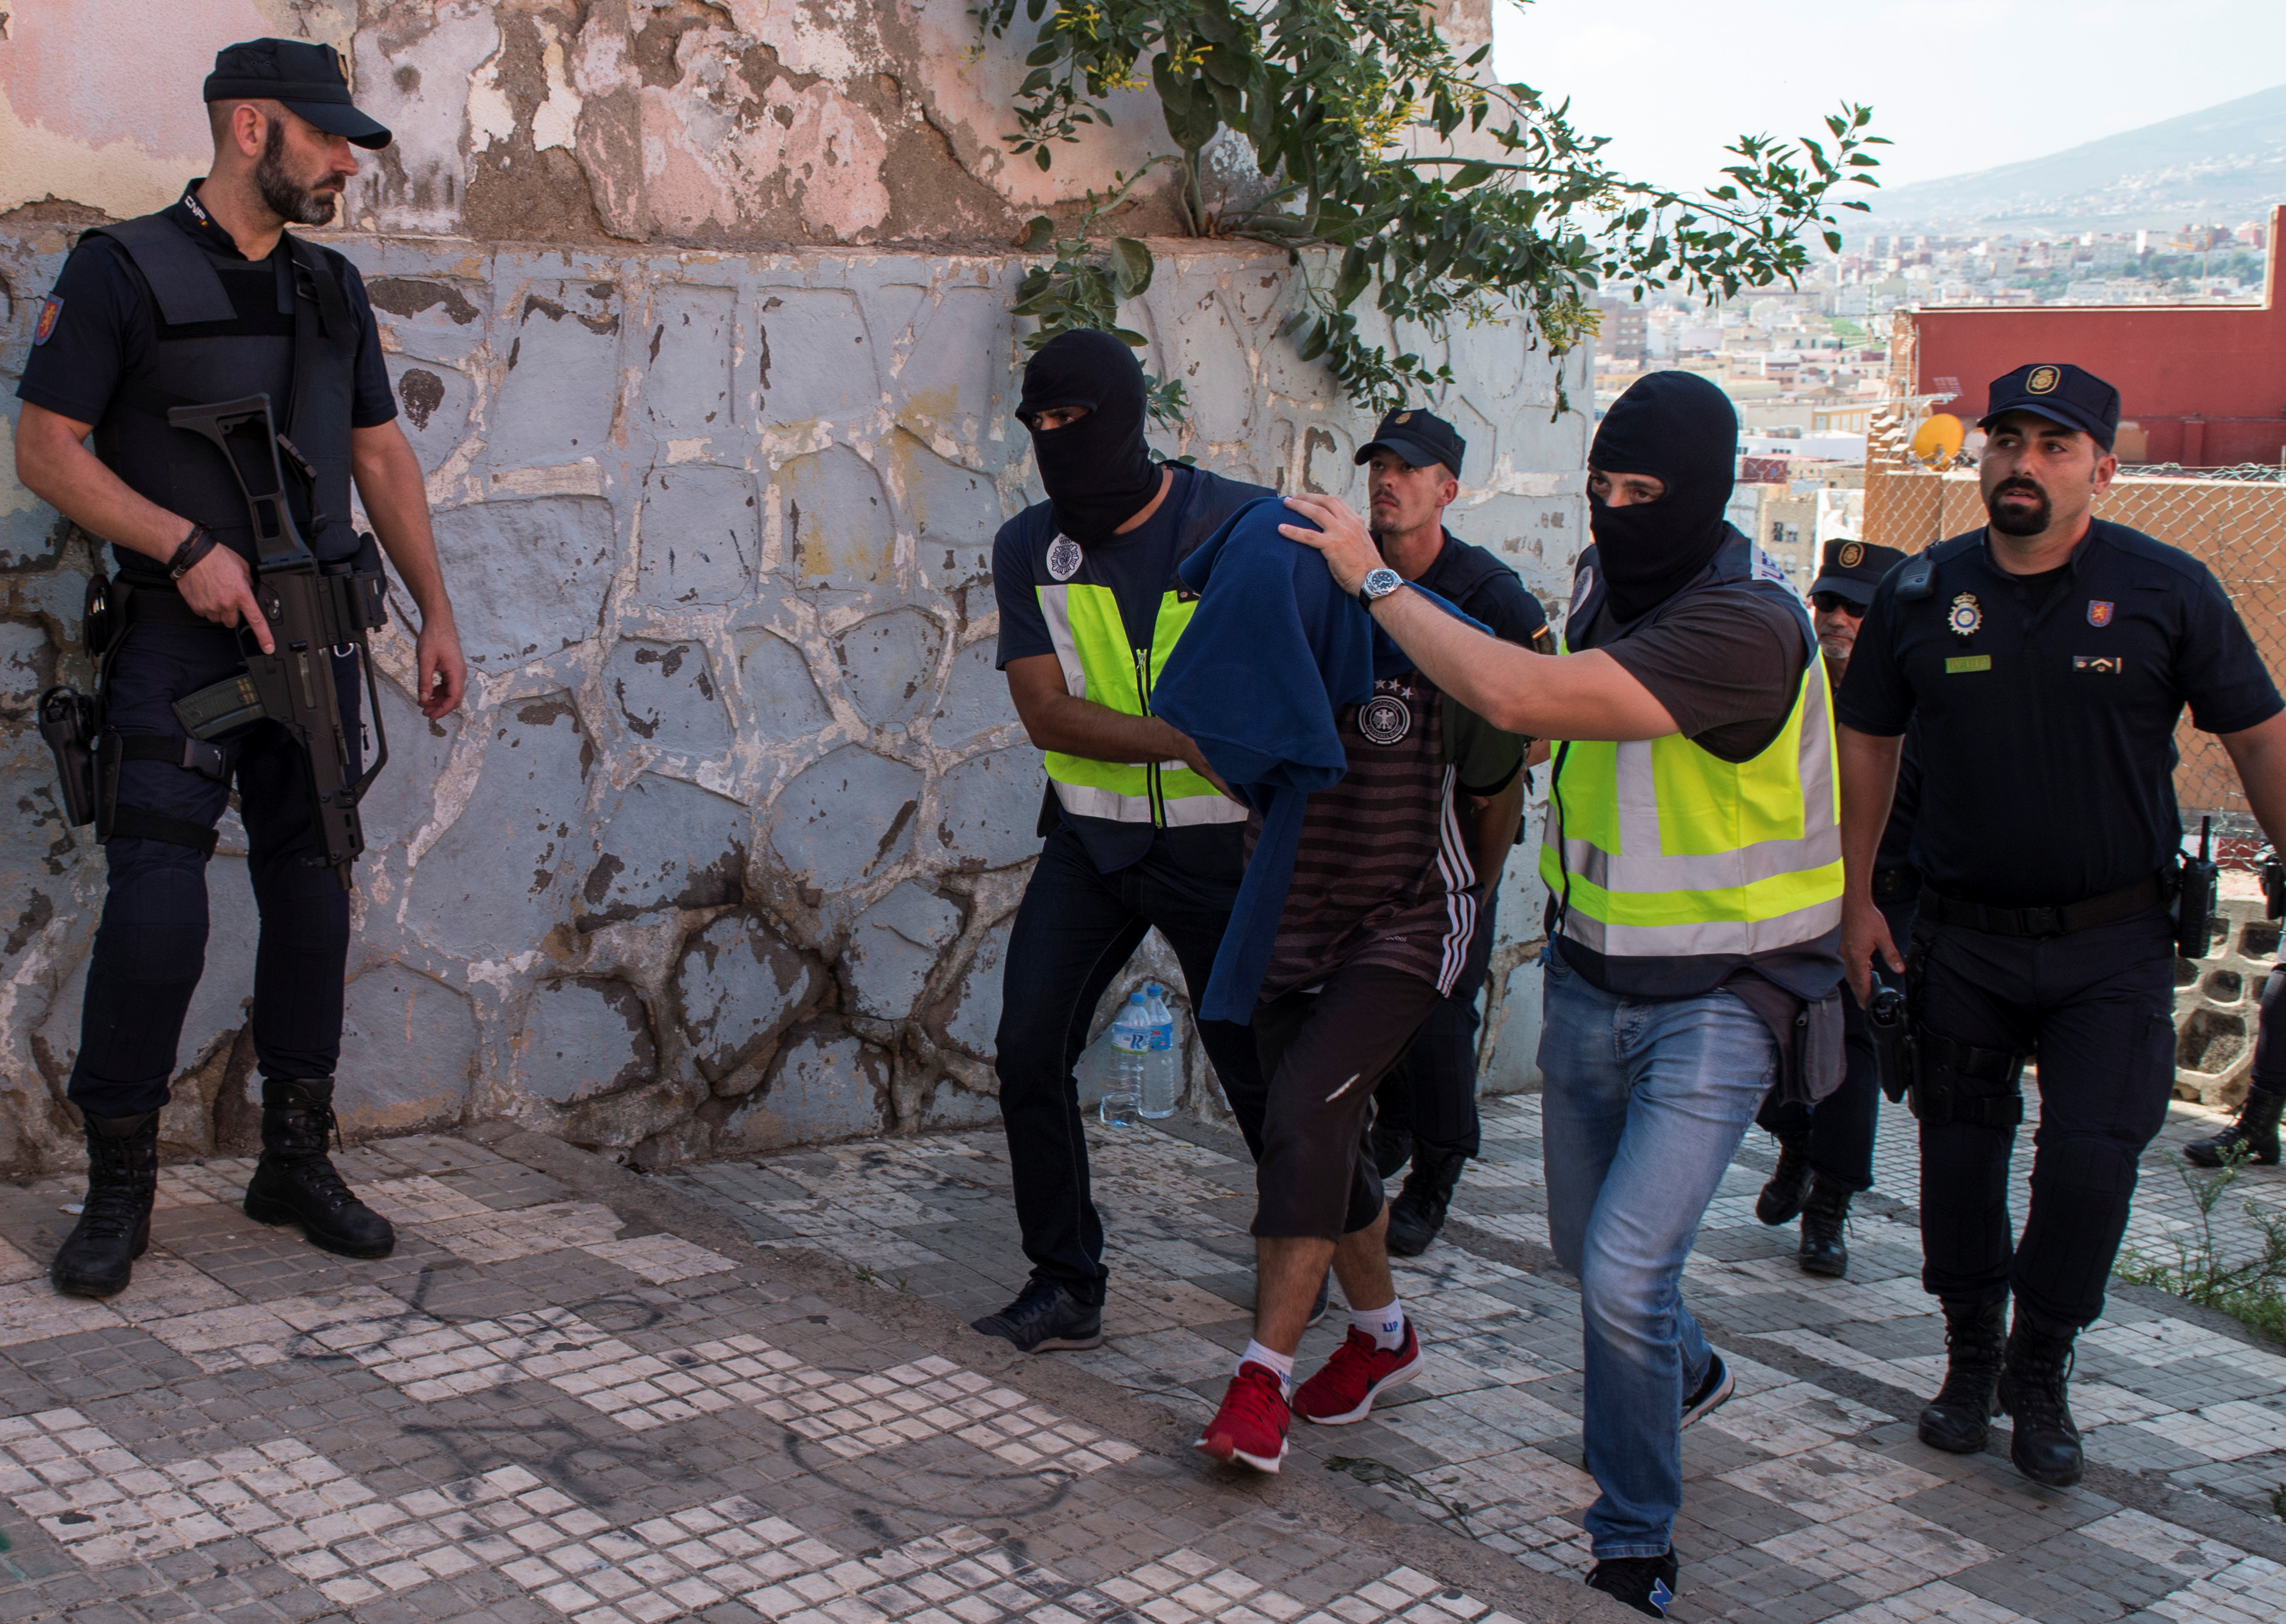 Spanish police arrest a man suspected of belonging to an Islamist militant cell that simulated decapitations in the Spanish north African enclave of Melilla on Sept. 6, 2017.  (REUTERS/Jesus Blasco de Avellaneda)